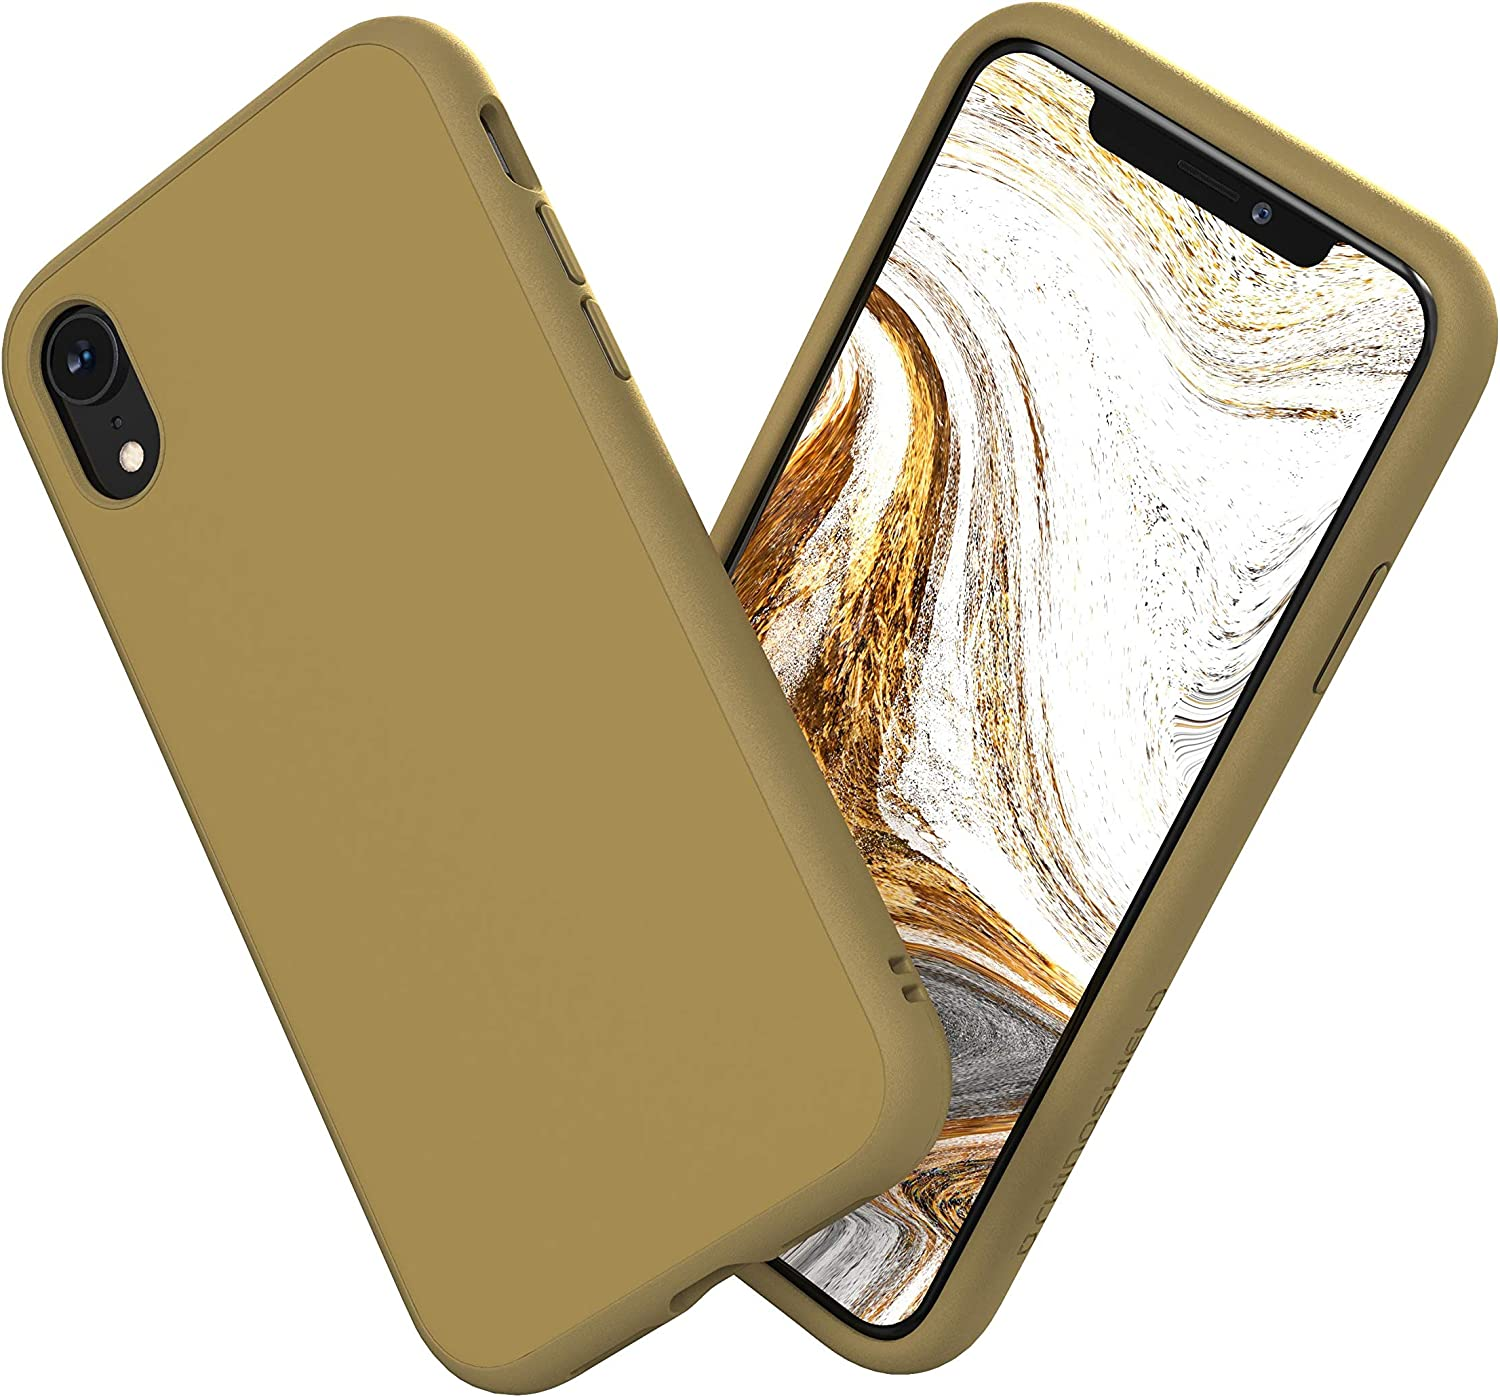 Amazon Com Rhinoshield Ultra Protective Phone Case Iphone Xr Solidsuit Military Grade Drop Protection Against Full Impact Supports Wireless Charging Slim Scratch Resistant Beige